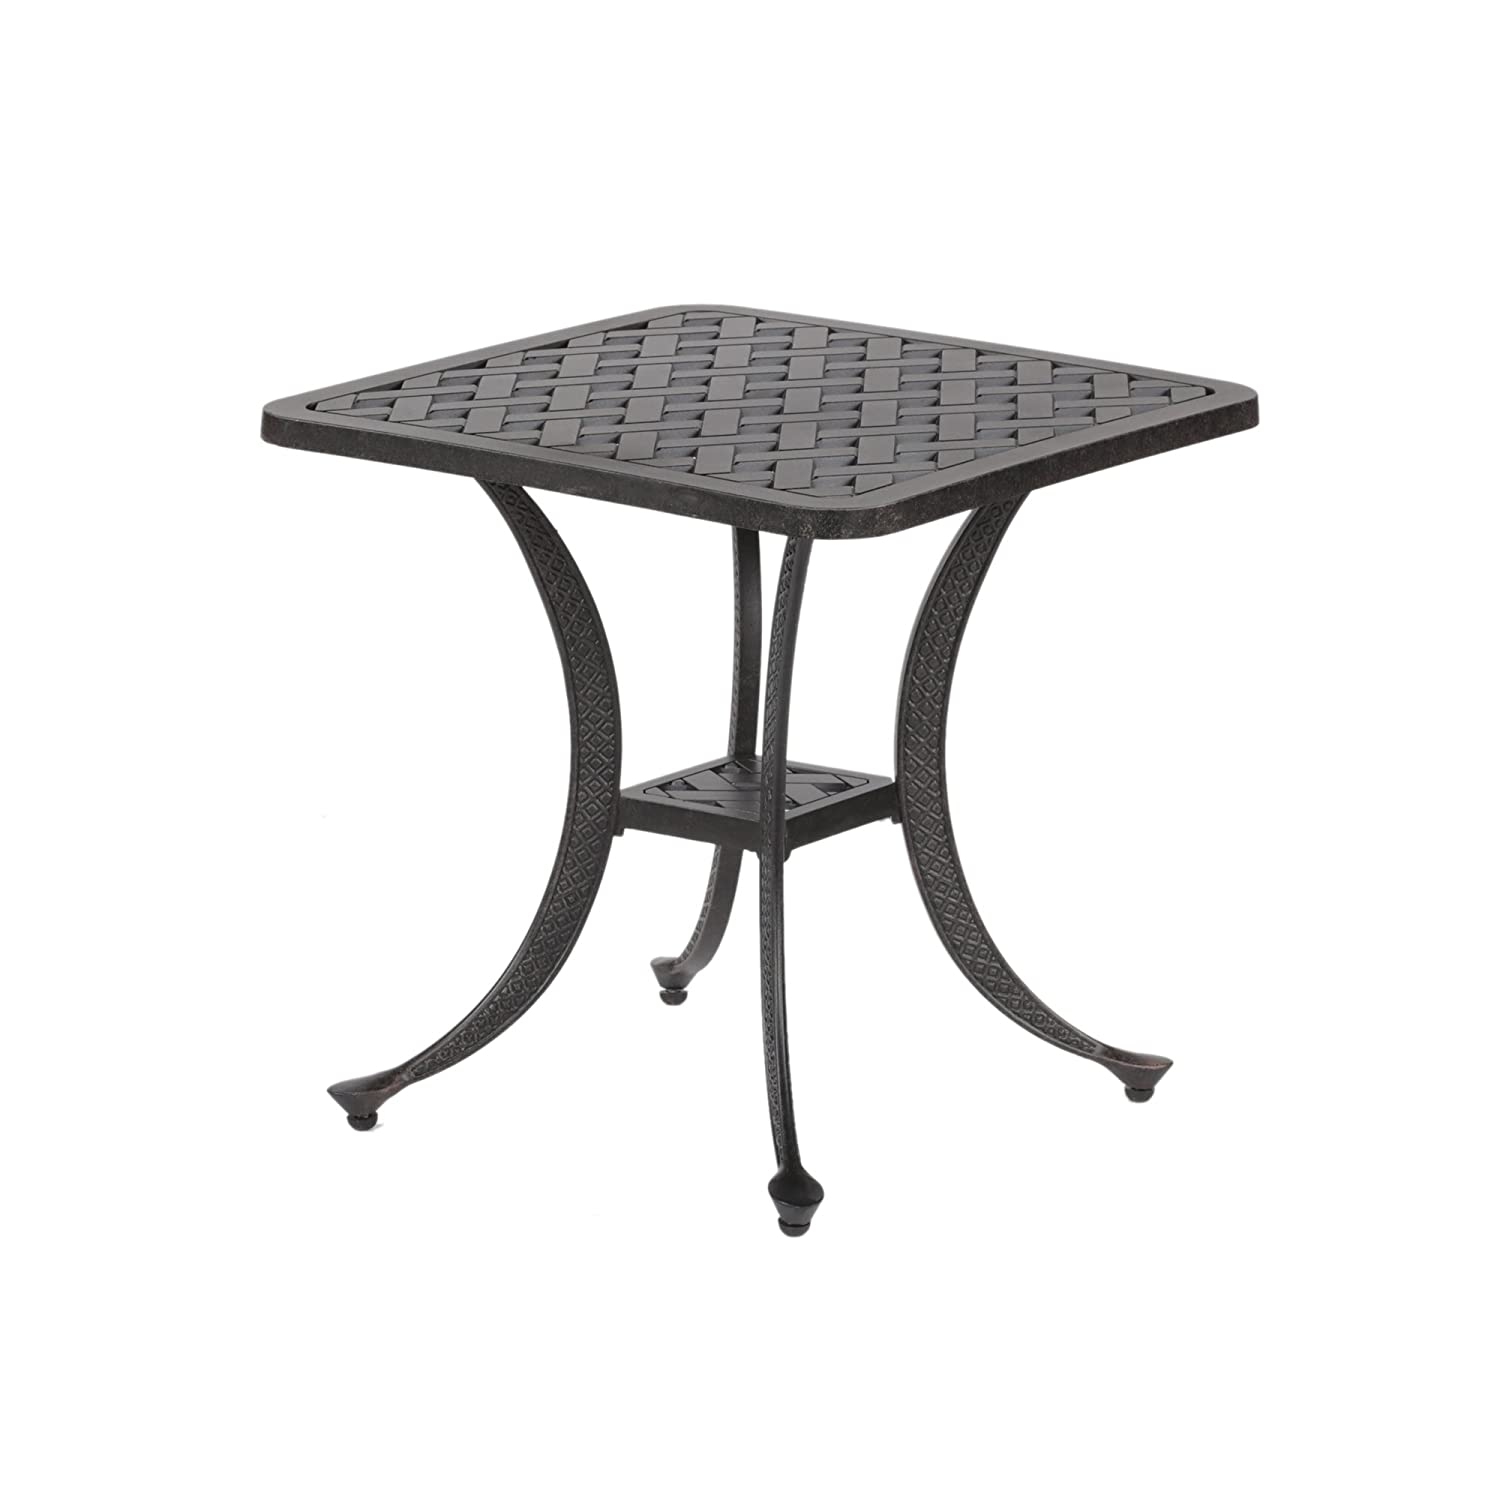 iPatio Sparta Standard Square Cast Aluminum Side Table, Outdoor End Table Rust